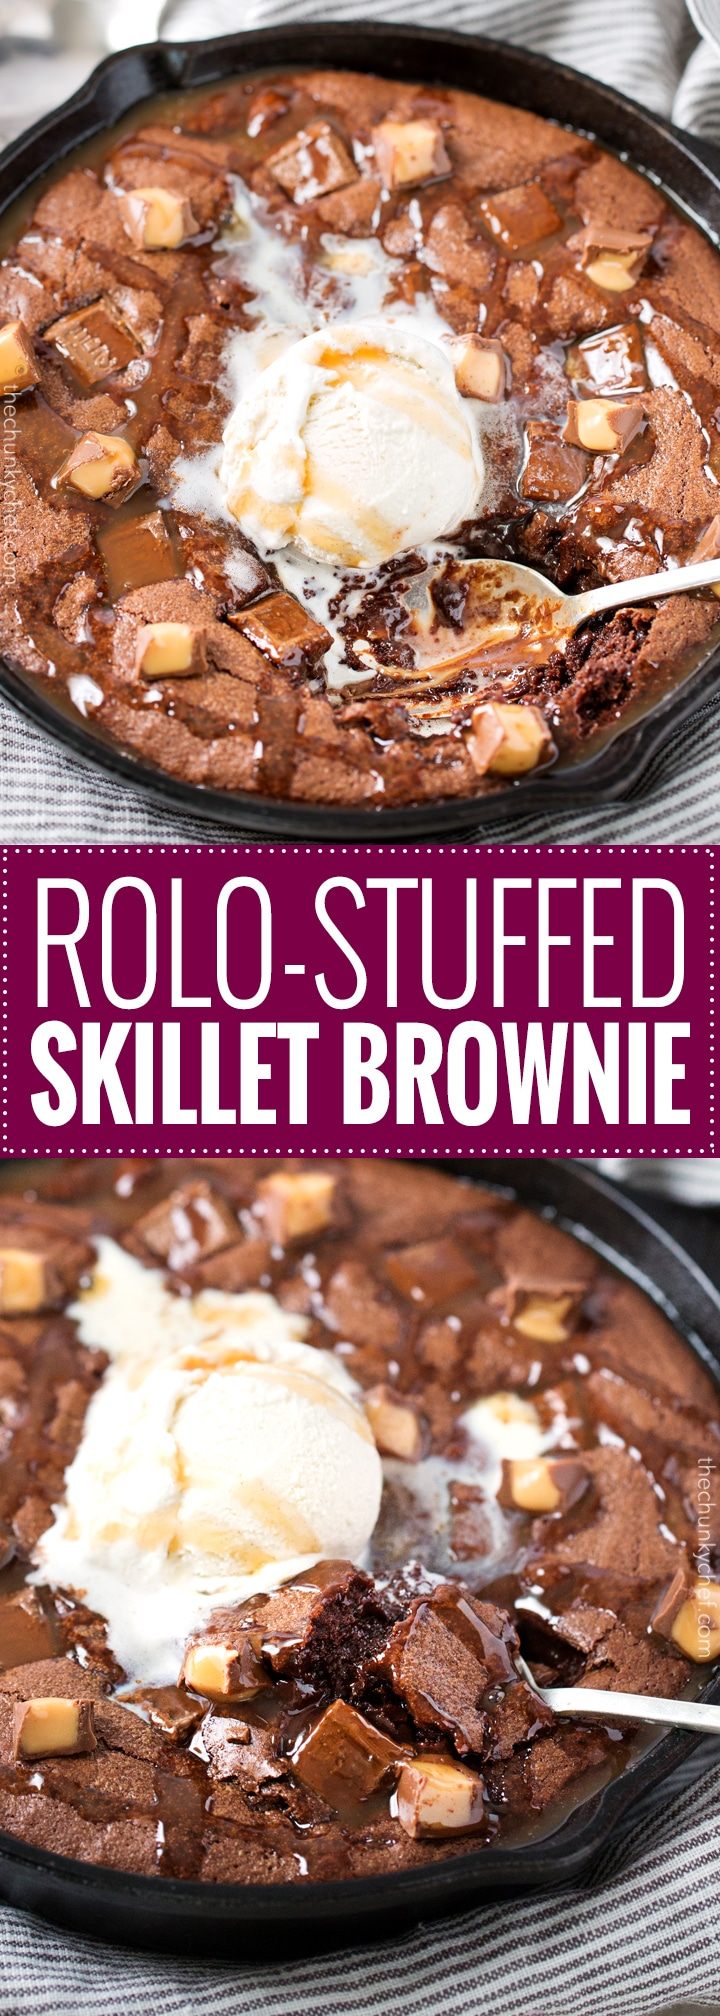 Rolo-Stuffed Skillet Brownie | This one bowl brownie recipe is made in a skillet, stuffed with rolo candies and Hershey bar pieces, and baked until warm and fudgy! | http://thechunkychef.com